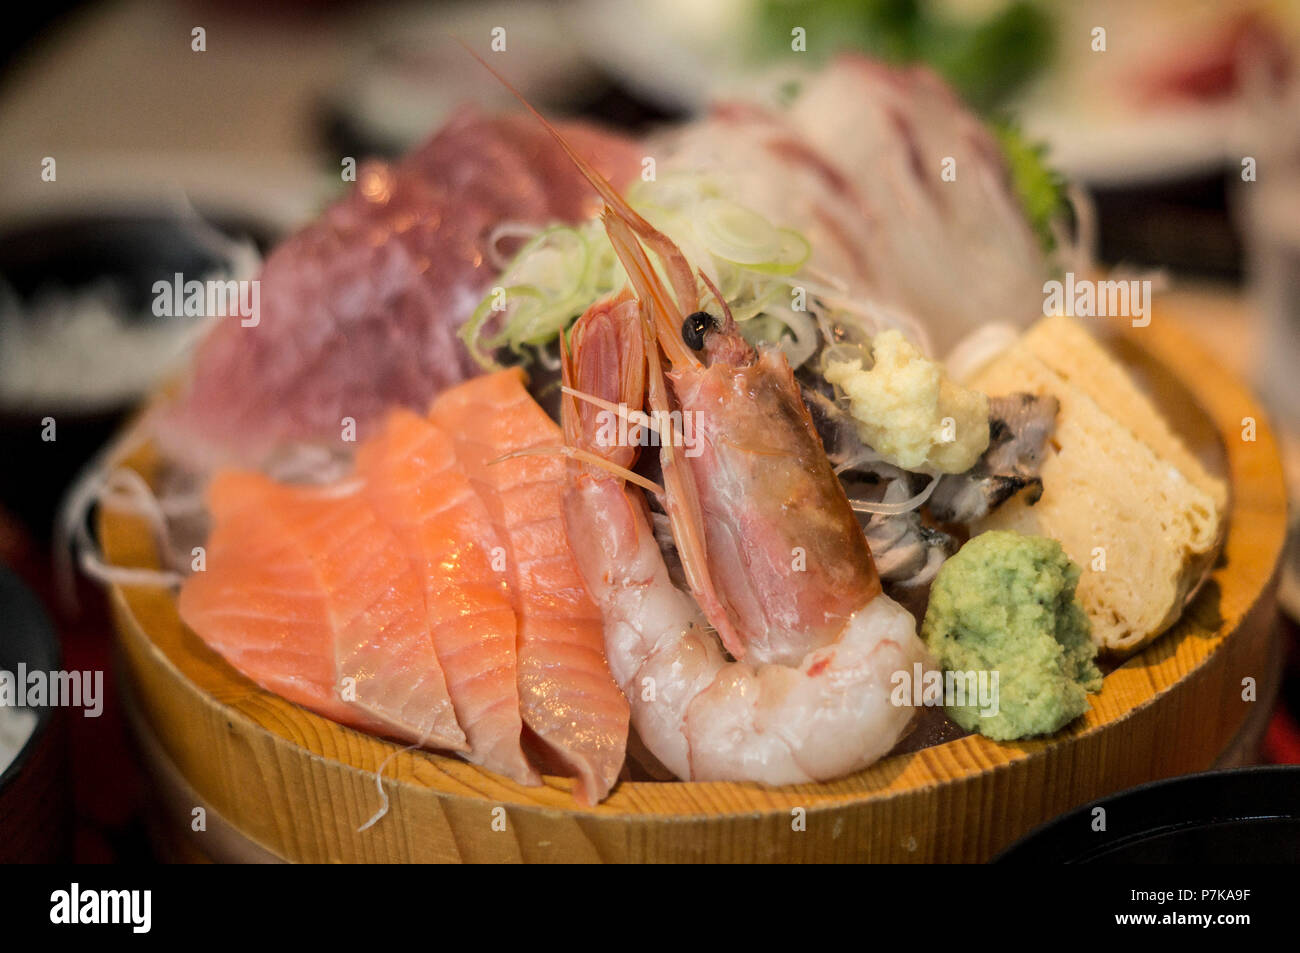 A plate with fresh fish at the fish market in Tokyo - Stock Image